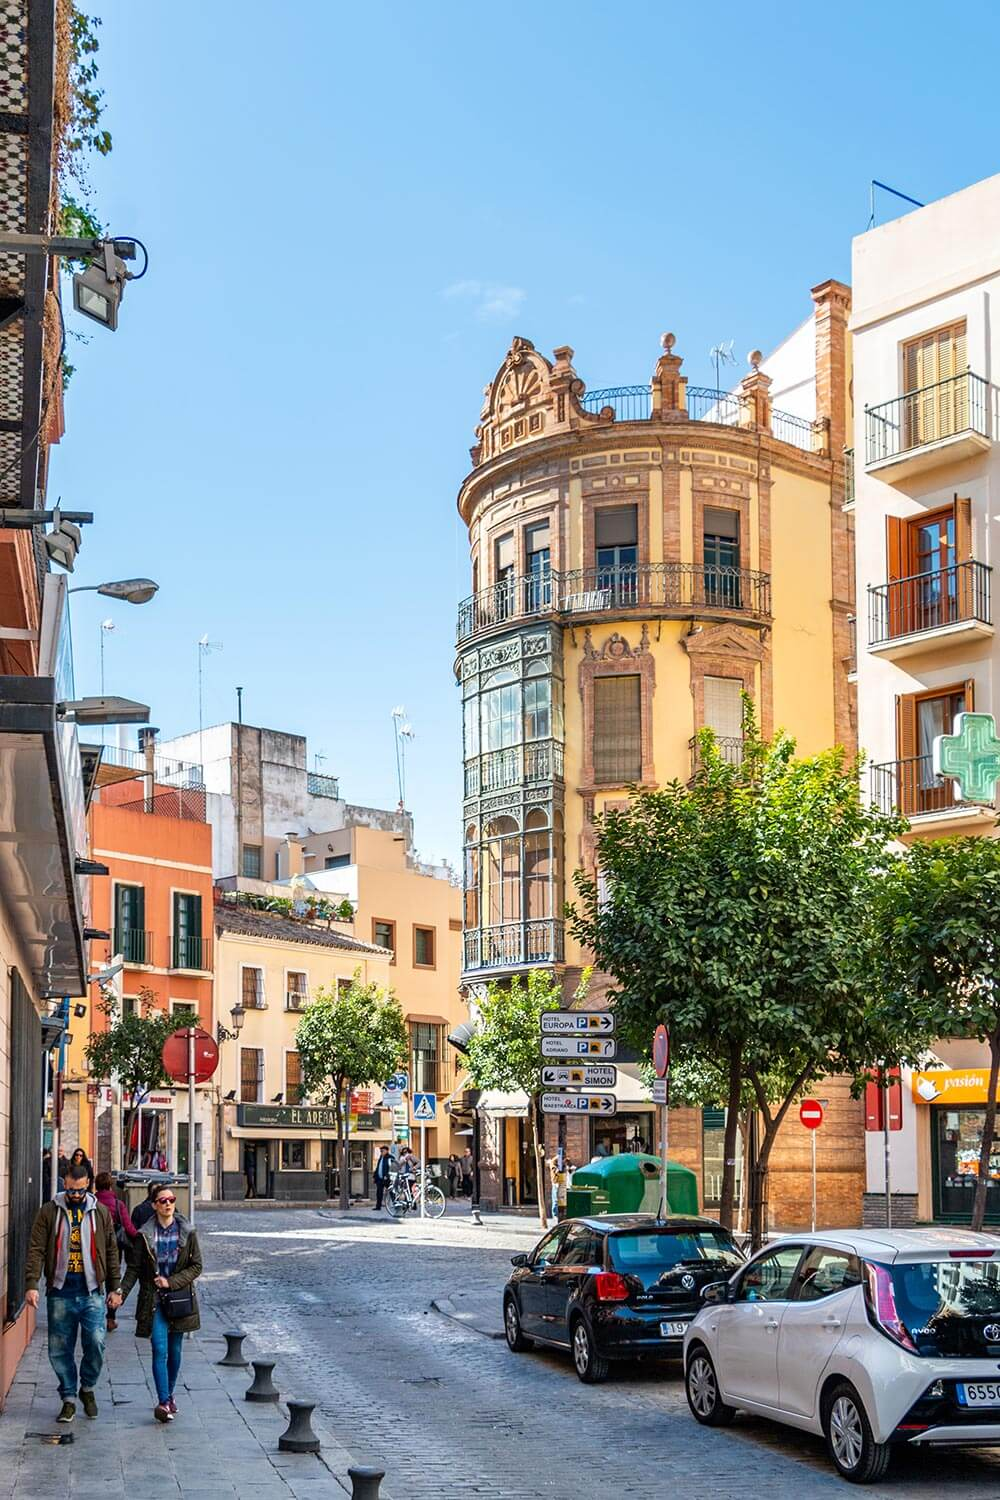 Stunning Architecture in Seville